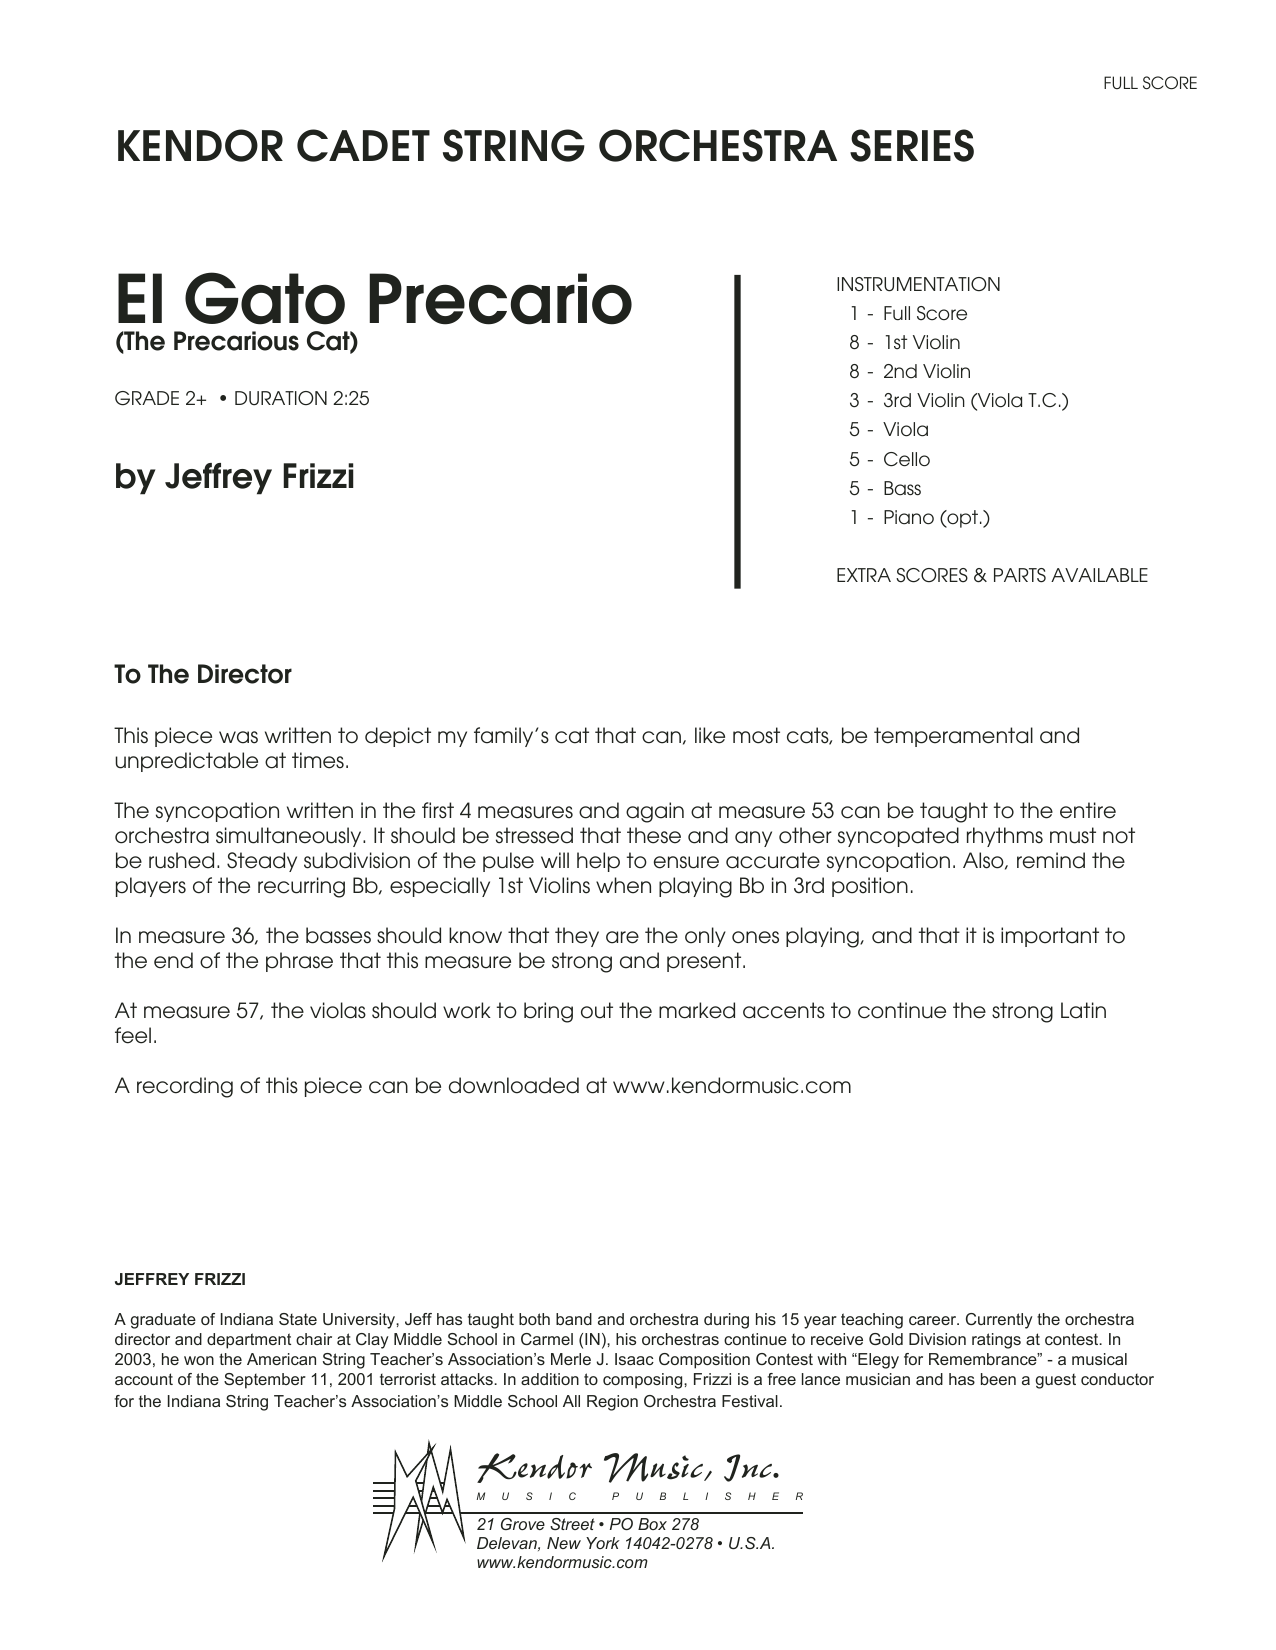 El Gato Precario (The Precarious Cat) - Full Score